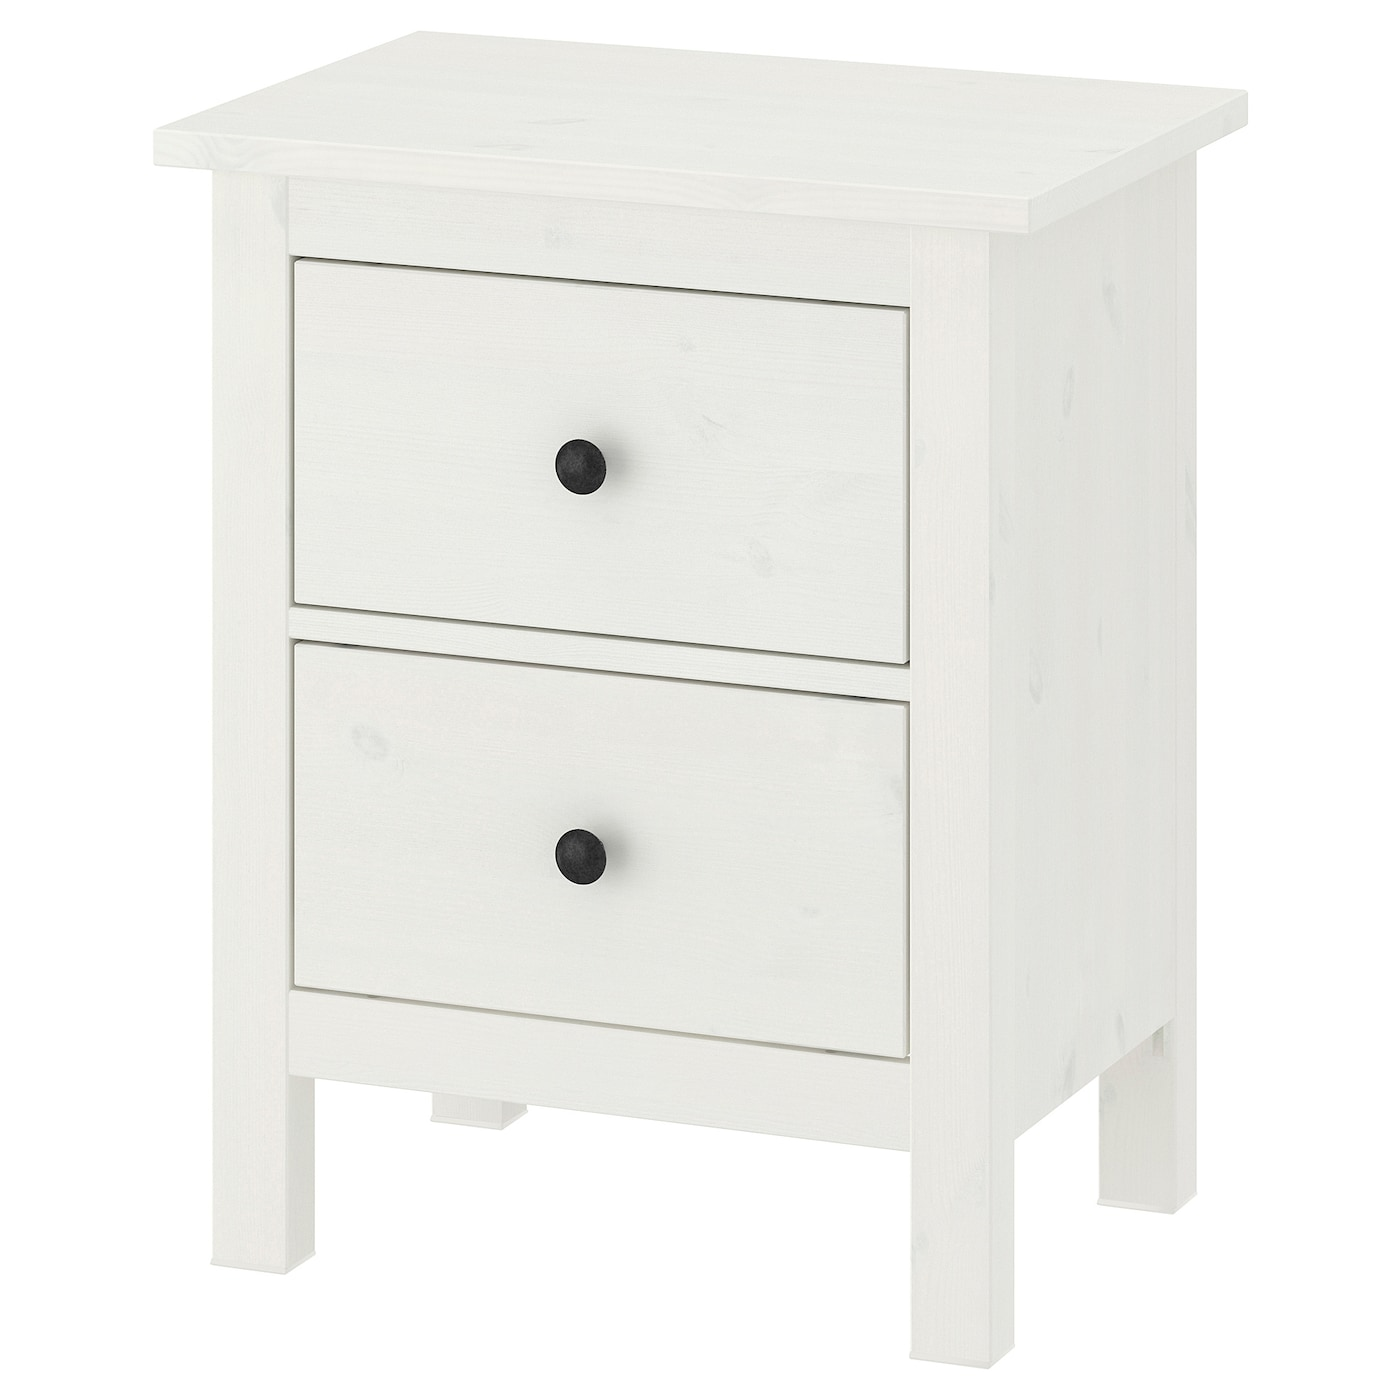 2 Drawer Chest Hemnes White Stain